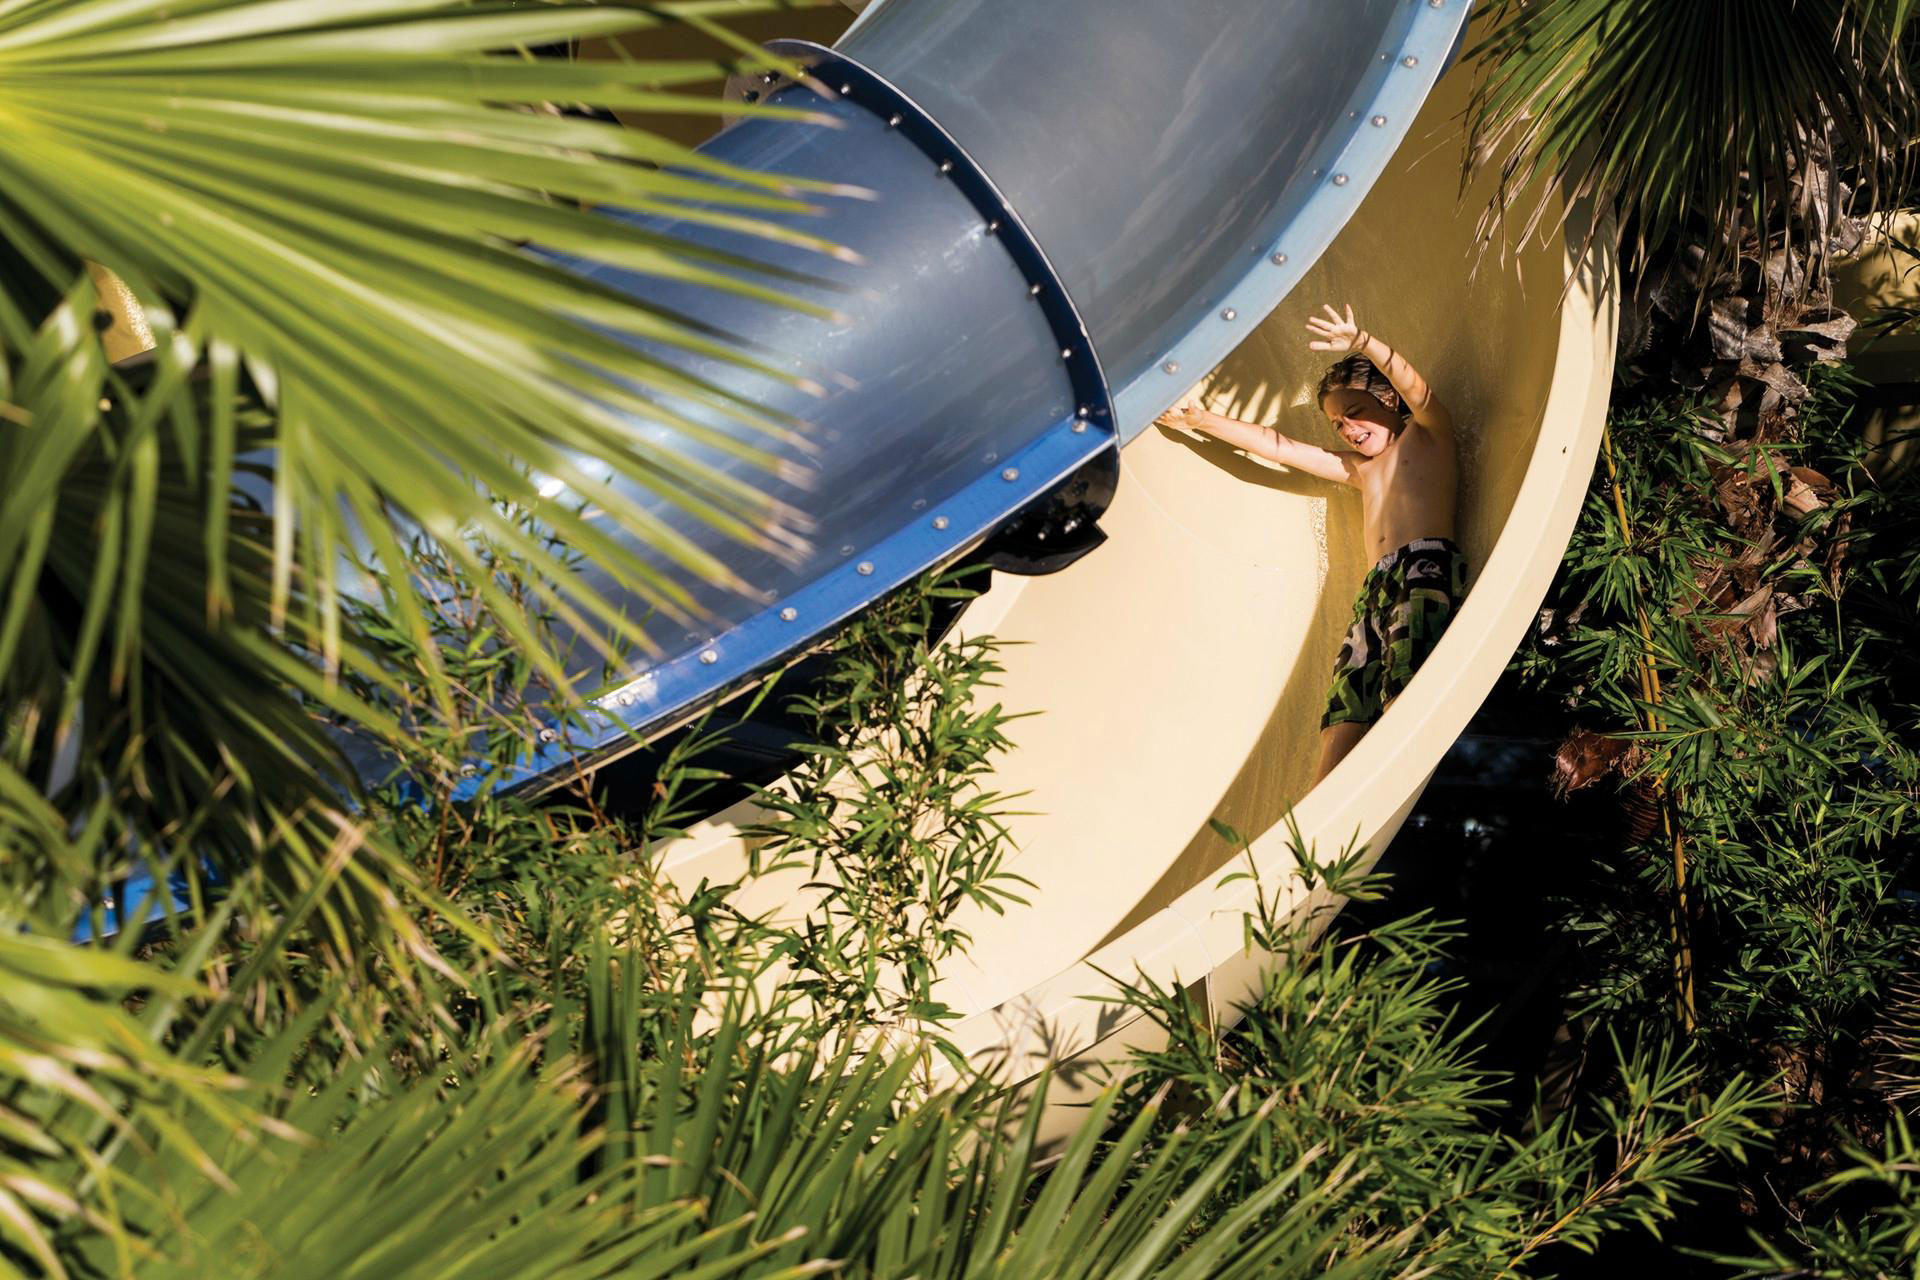 Waterslide at Four Seasons Resort Orlando at Walt Disney World Resort; Courtesy of Four Seasons Resort Orlando at Walt Disney World Resort